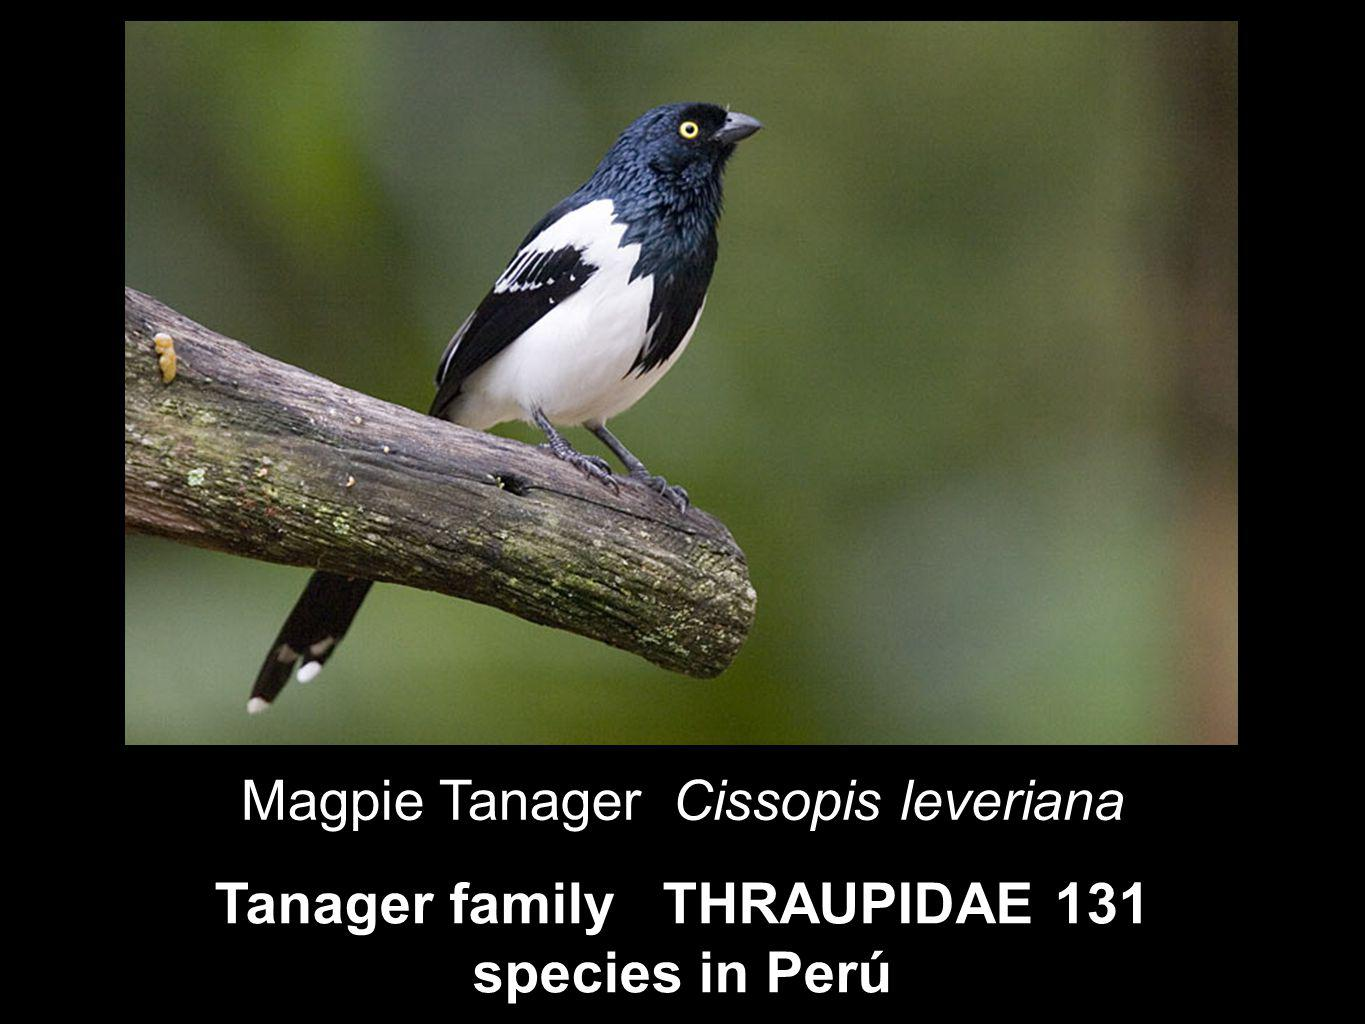 Tanager family THRAUPIDAE 131 species in Perú Magpie Tanager Cissopis leveriana